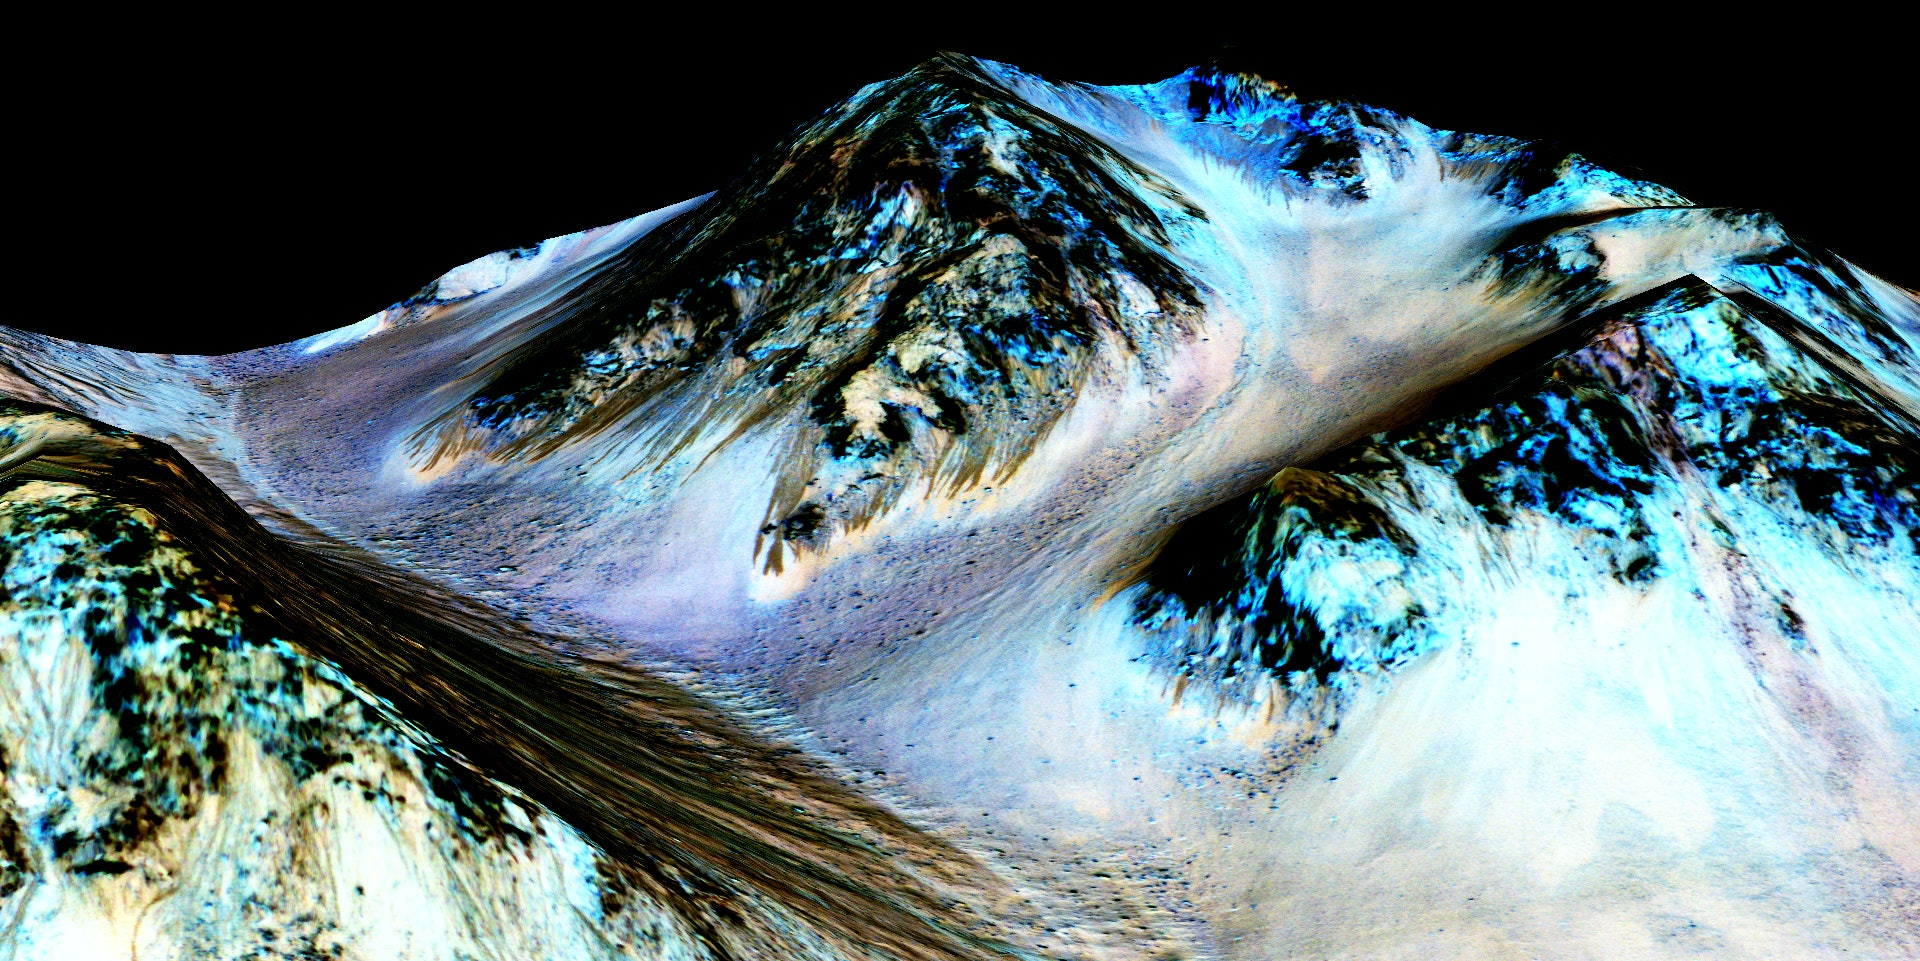 Billions of years ago, water flowed on Mars.  The environment was able to support liquid water thanks to interactions between methane, carbon dioxide, and hydrogen, a recent study found.